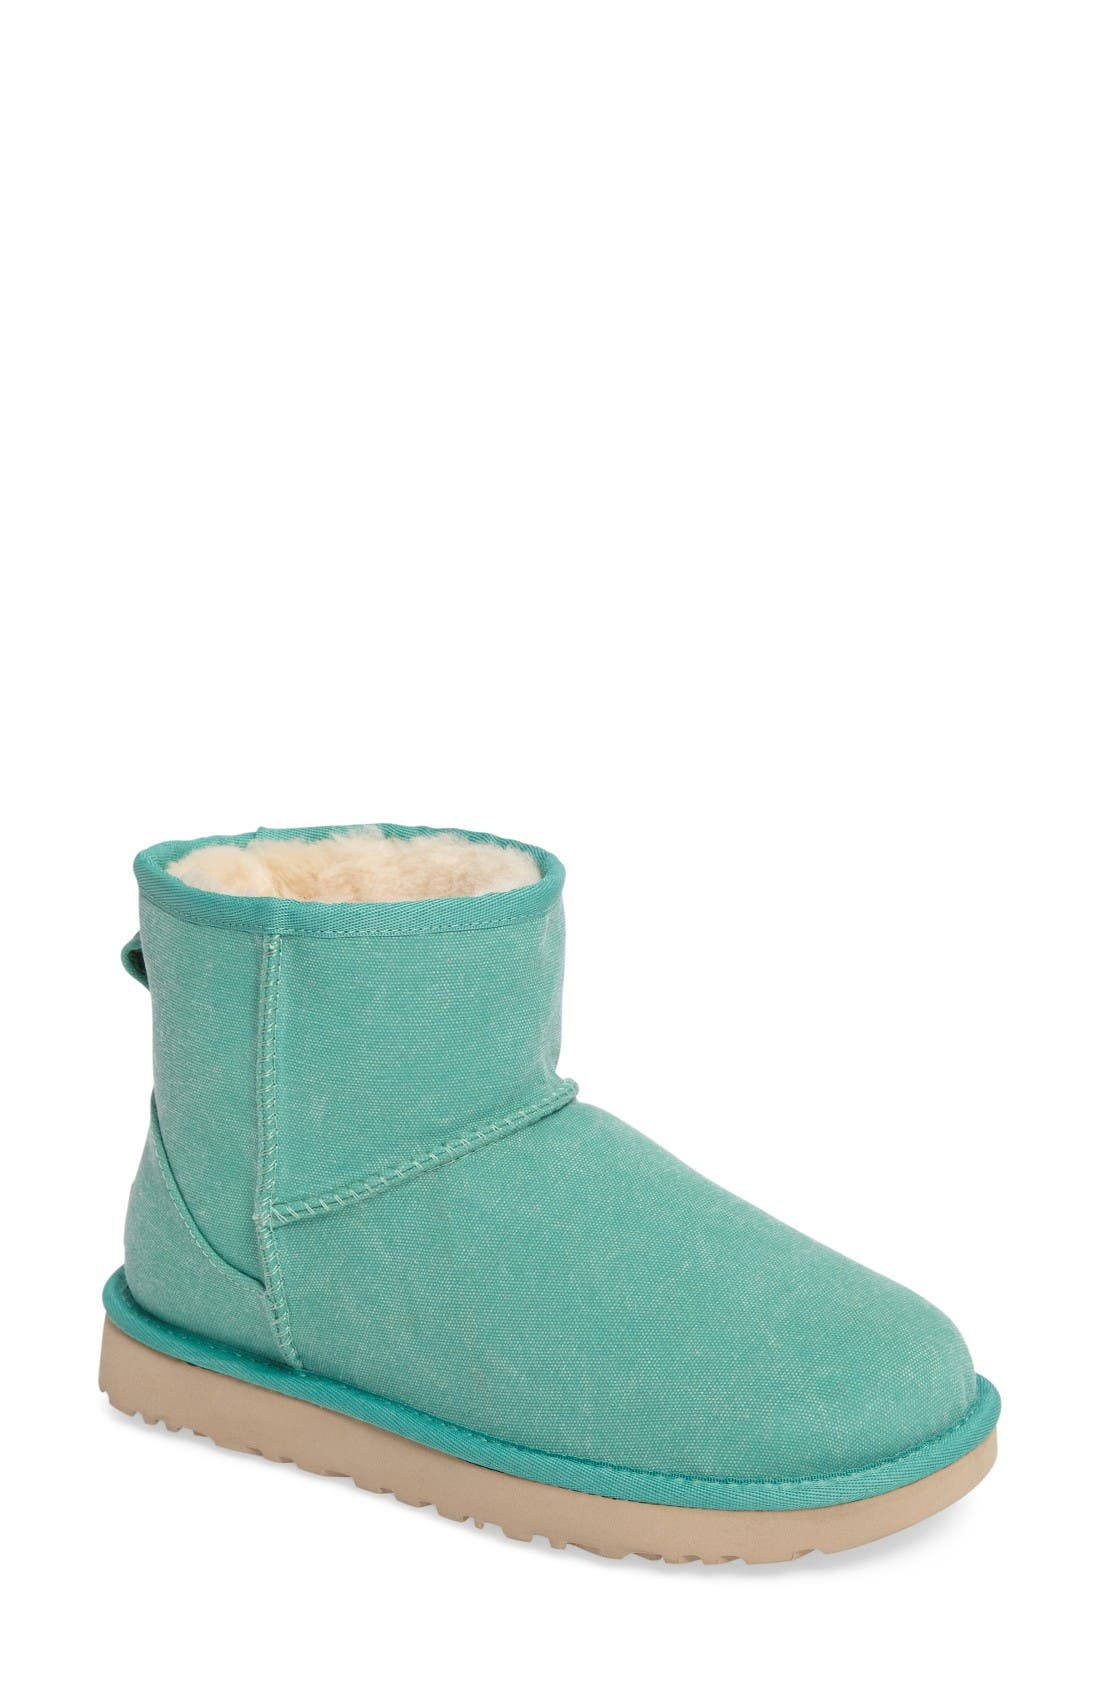 Classic Mini II Bootie,                         Main,                         color, Verde Canvas